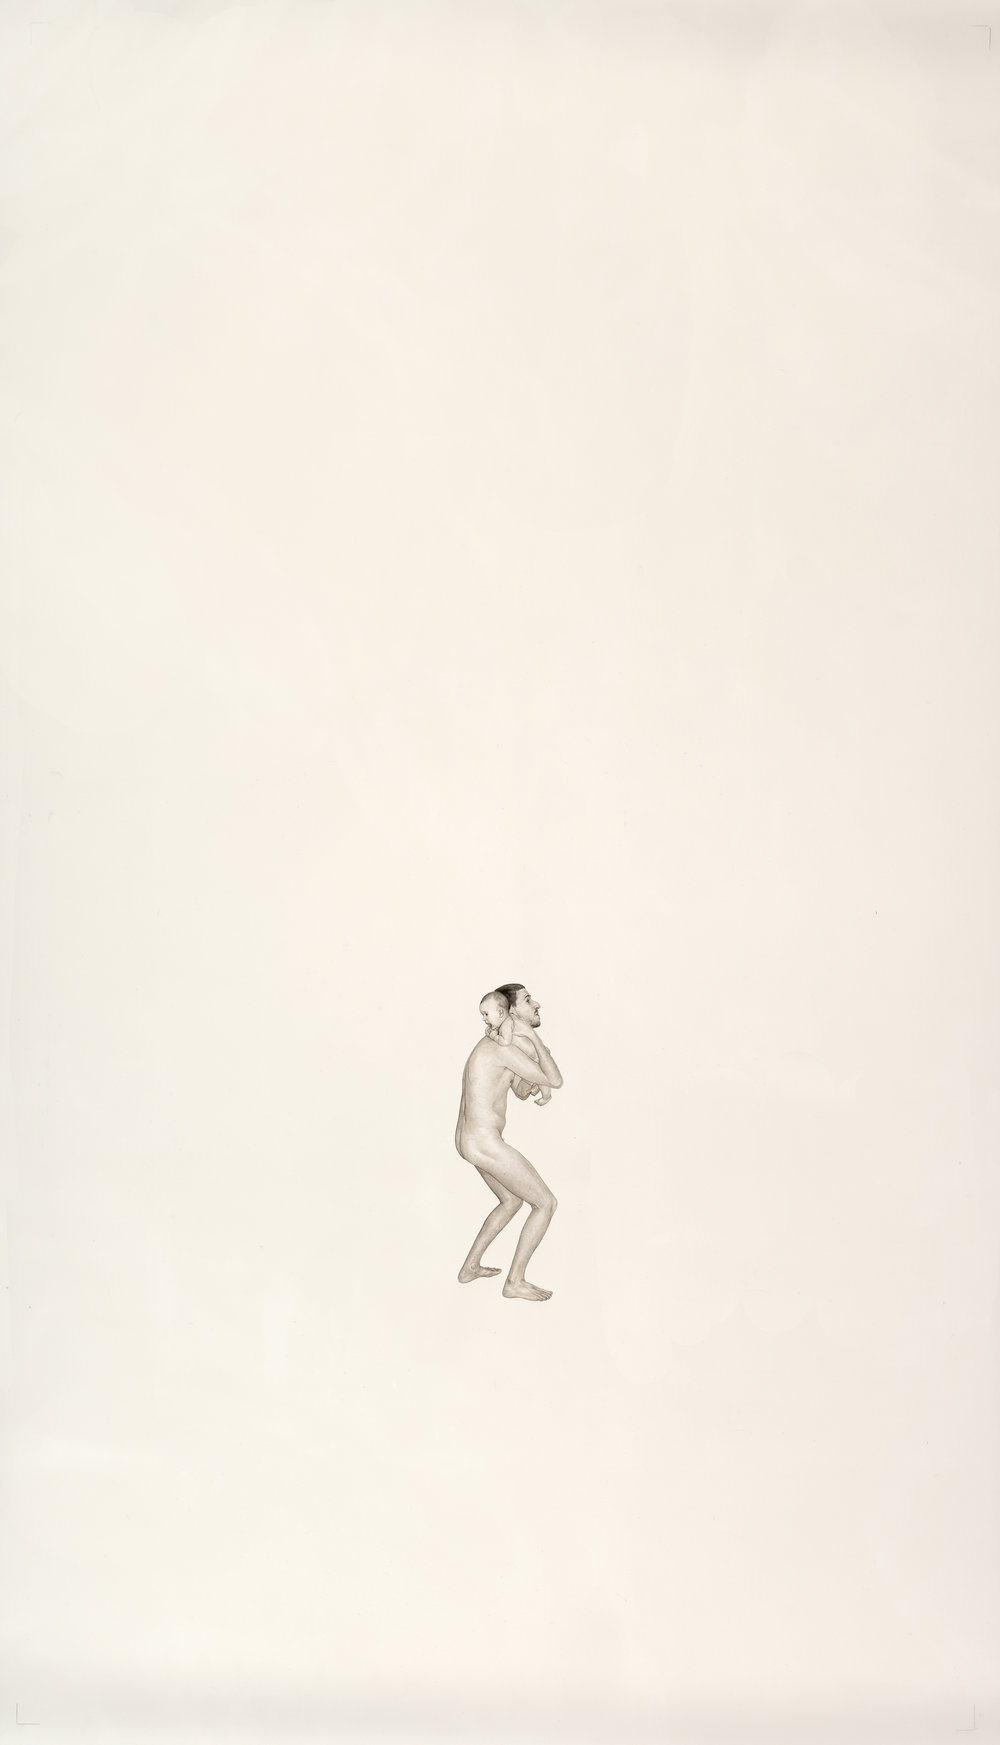 Elle et moi, 2012 inks and watercolor on paper 160 x 90 cm - 63 x 35 3/8 inches